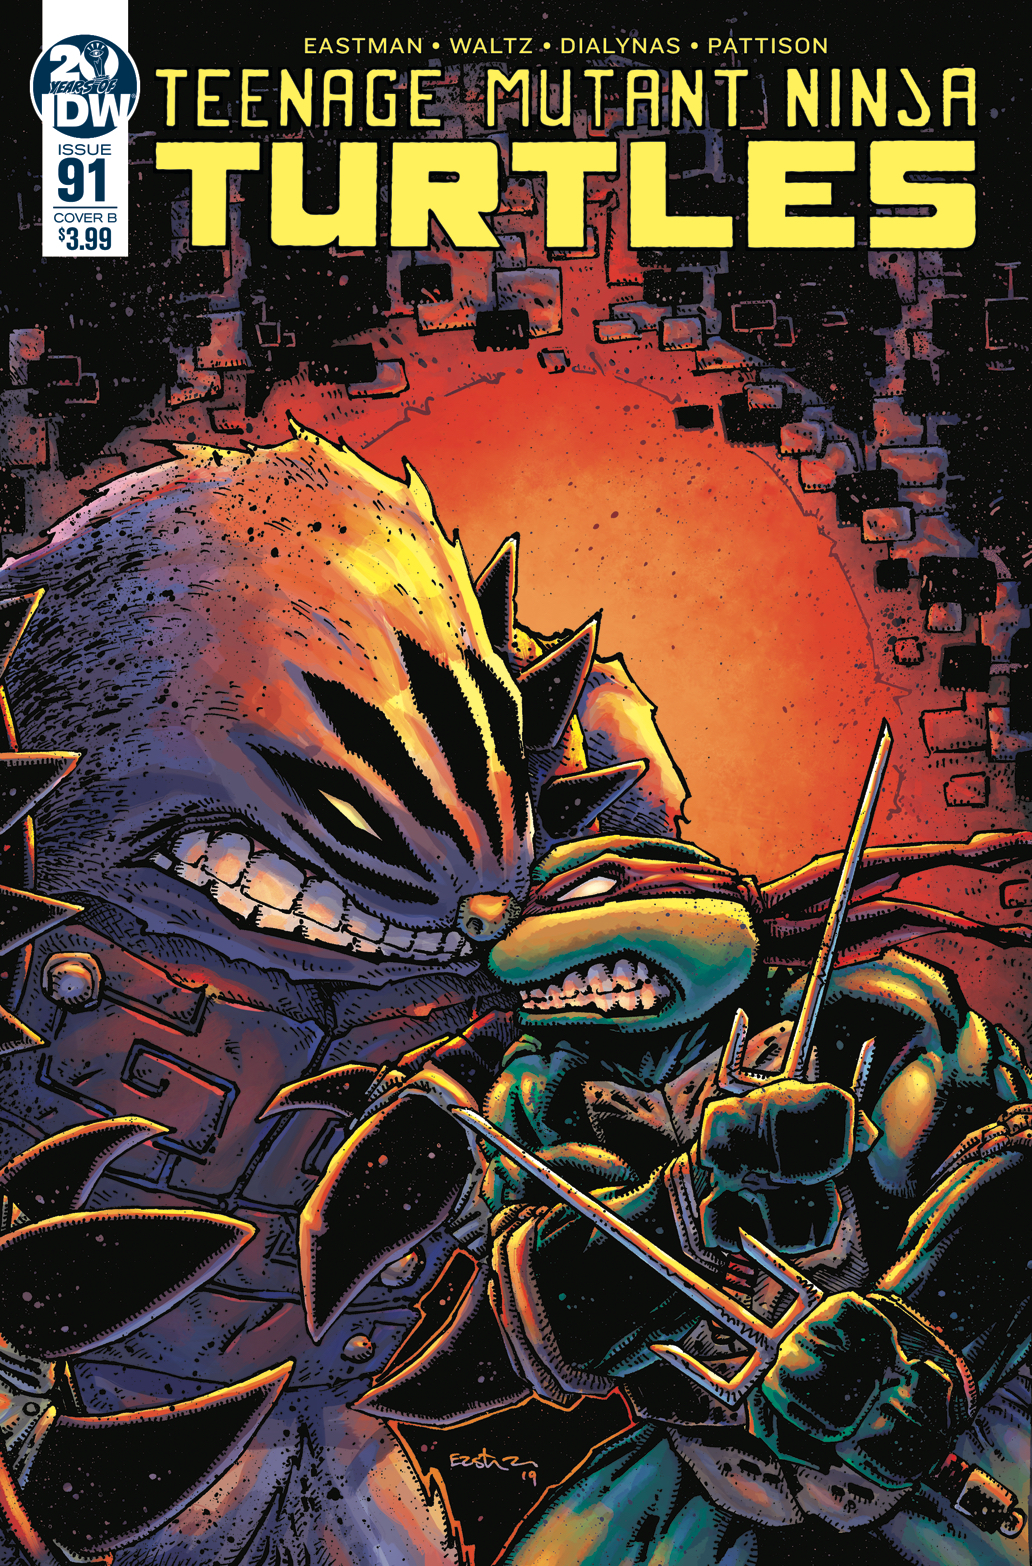 TMNT ONGOING #91 CVR B EASTMAN